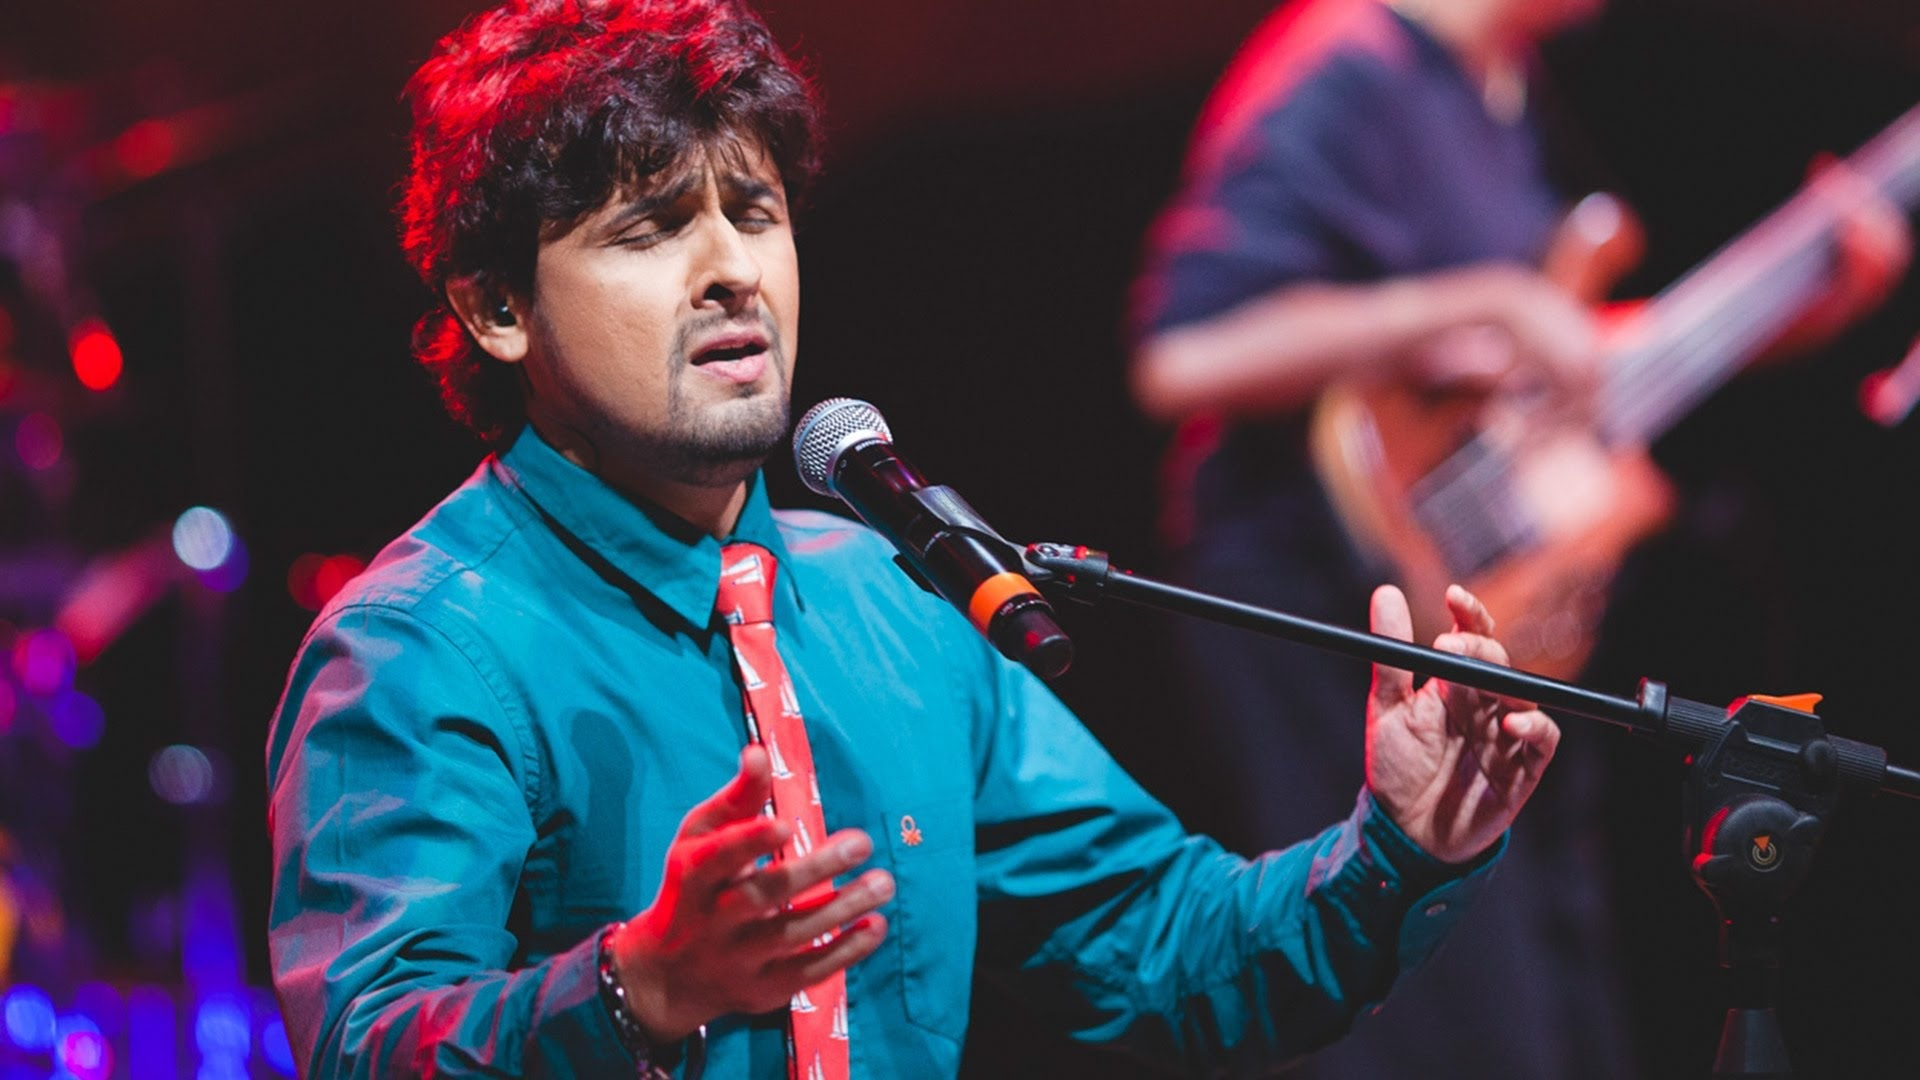 Sonu nigam  (Indian singer)